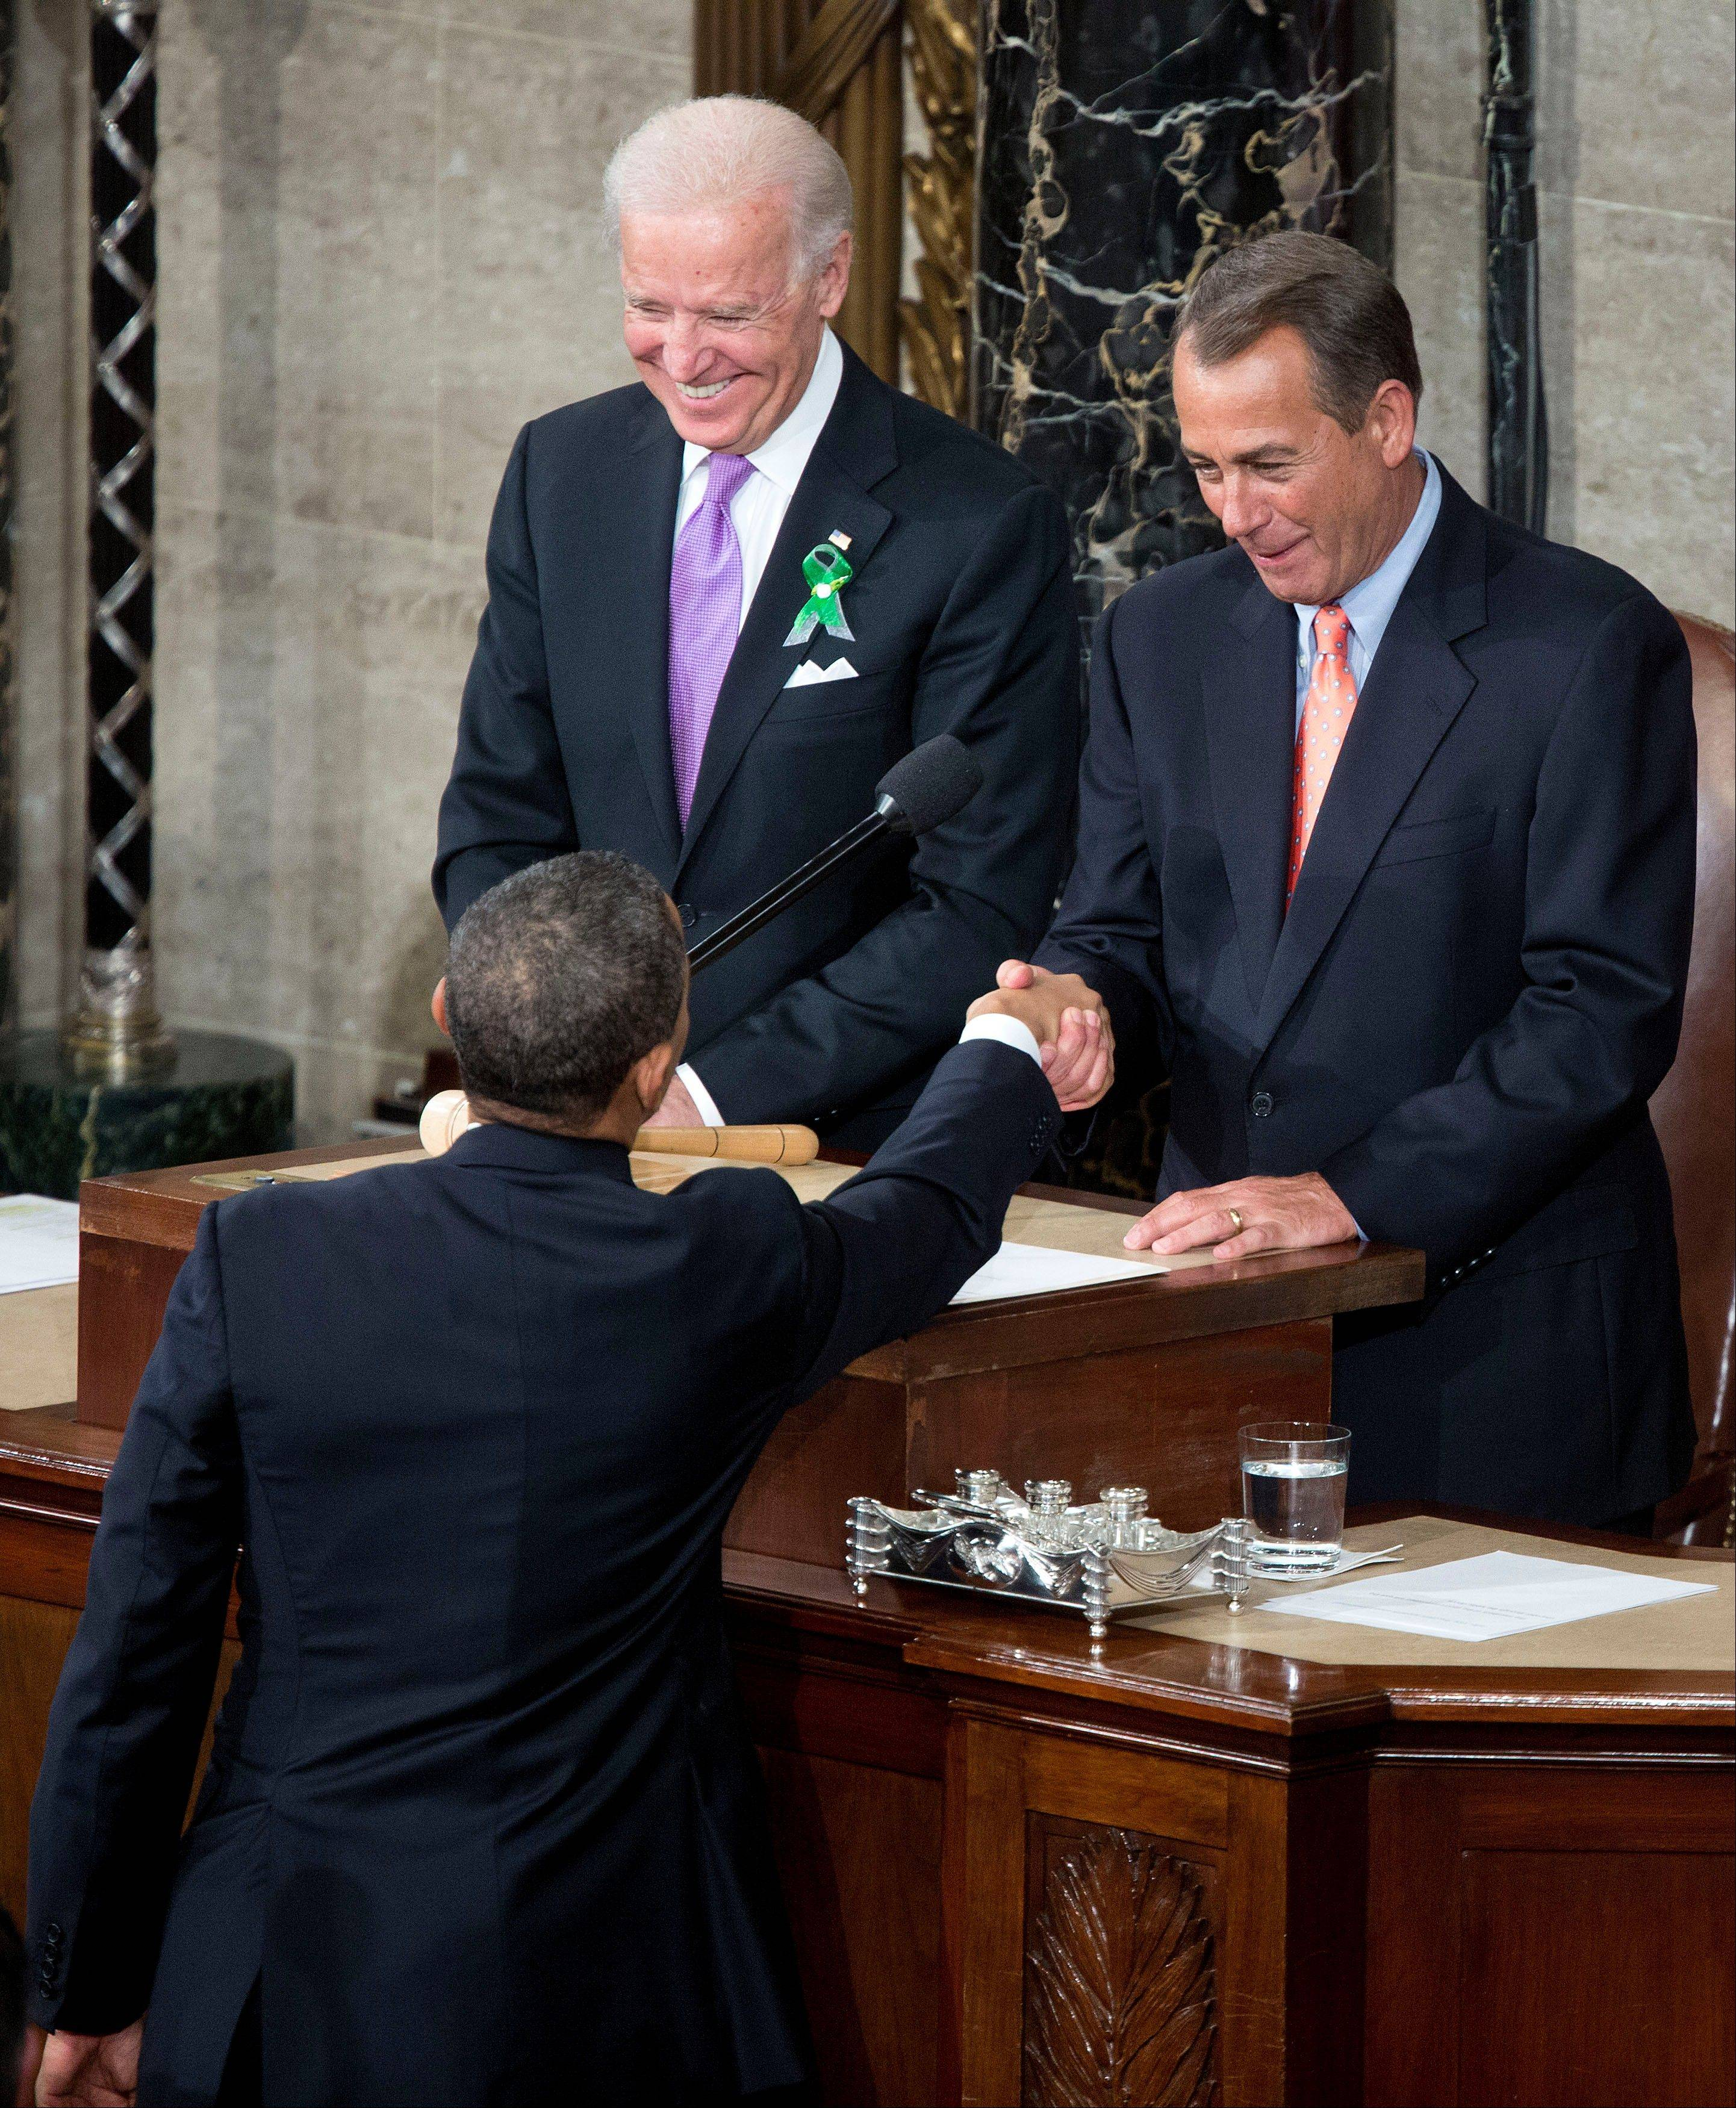 U.S. President Barack Obama greets House Speaker John Boehner, a Republican from Ohio, right, and Joseph �Joe� Biden, U.S. vice president, before delivering the State of the Union address Tuesday.